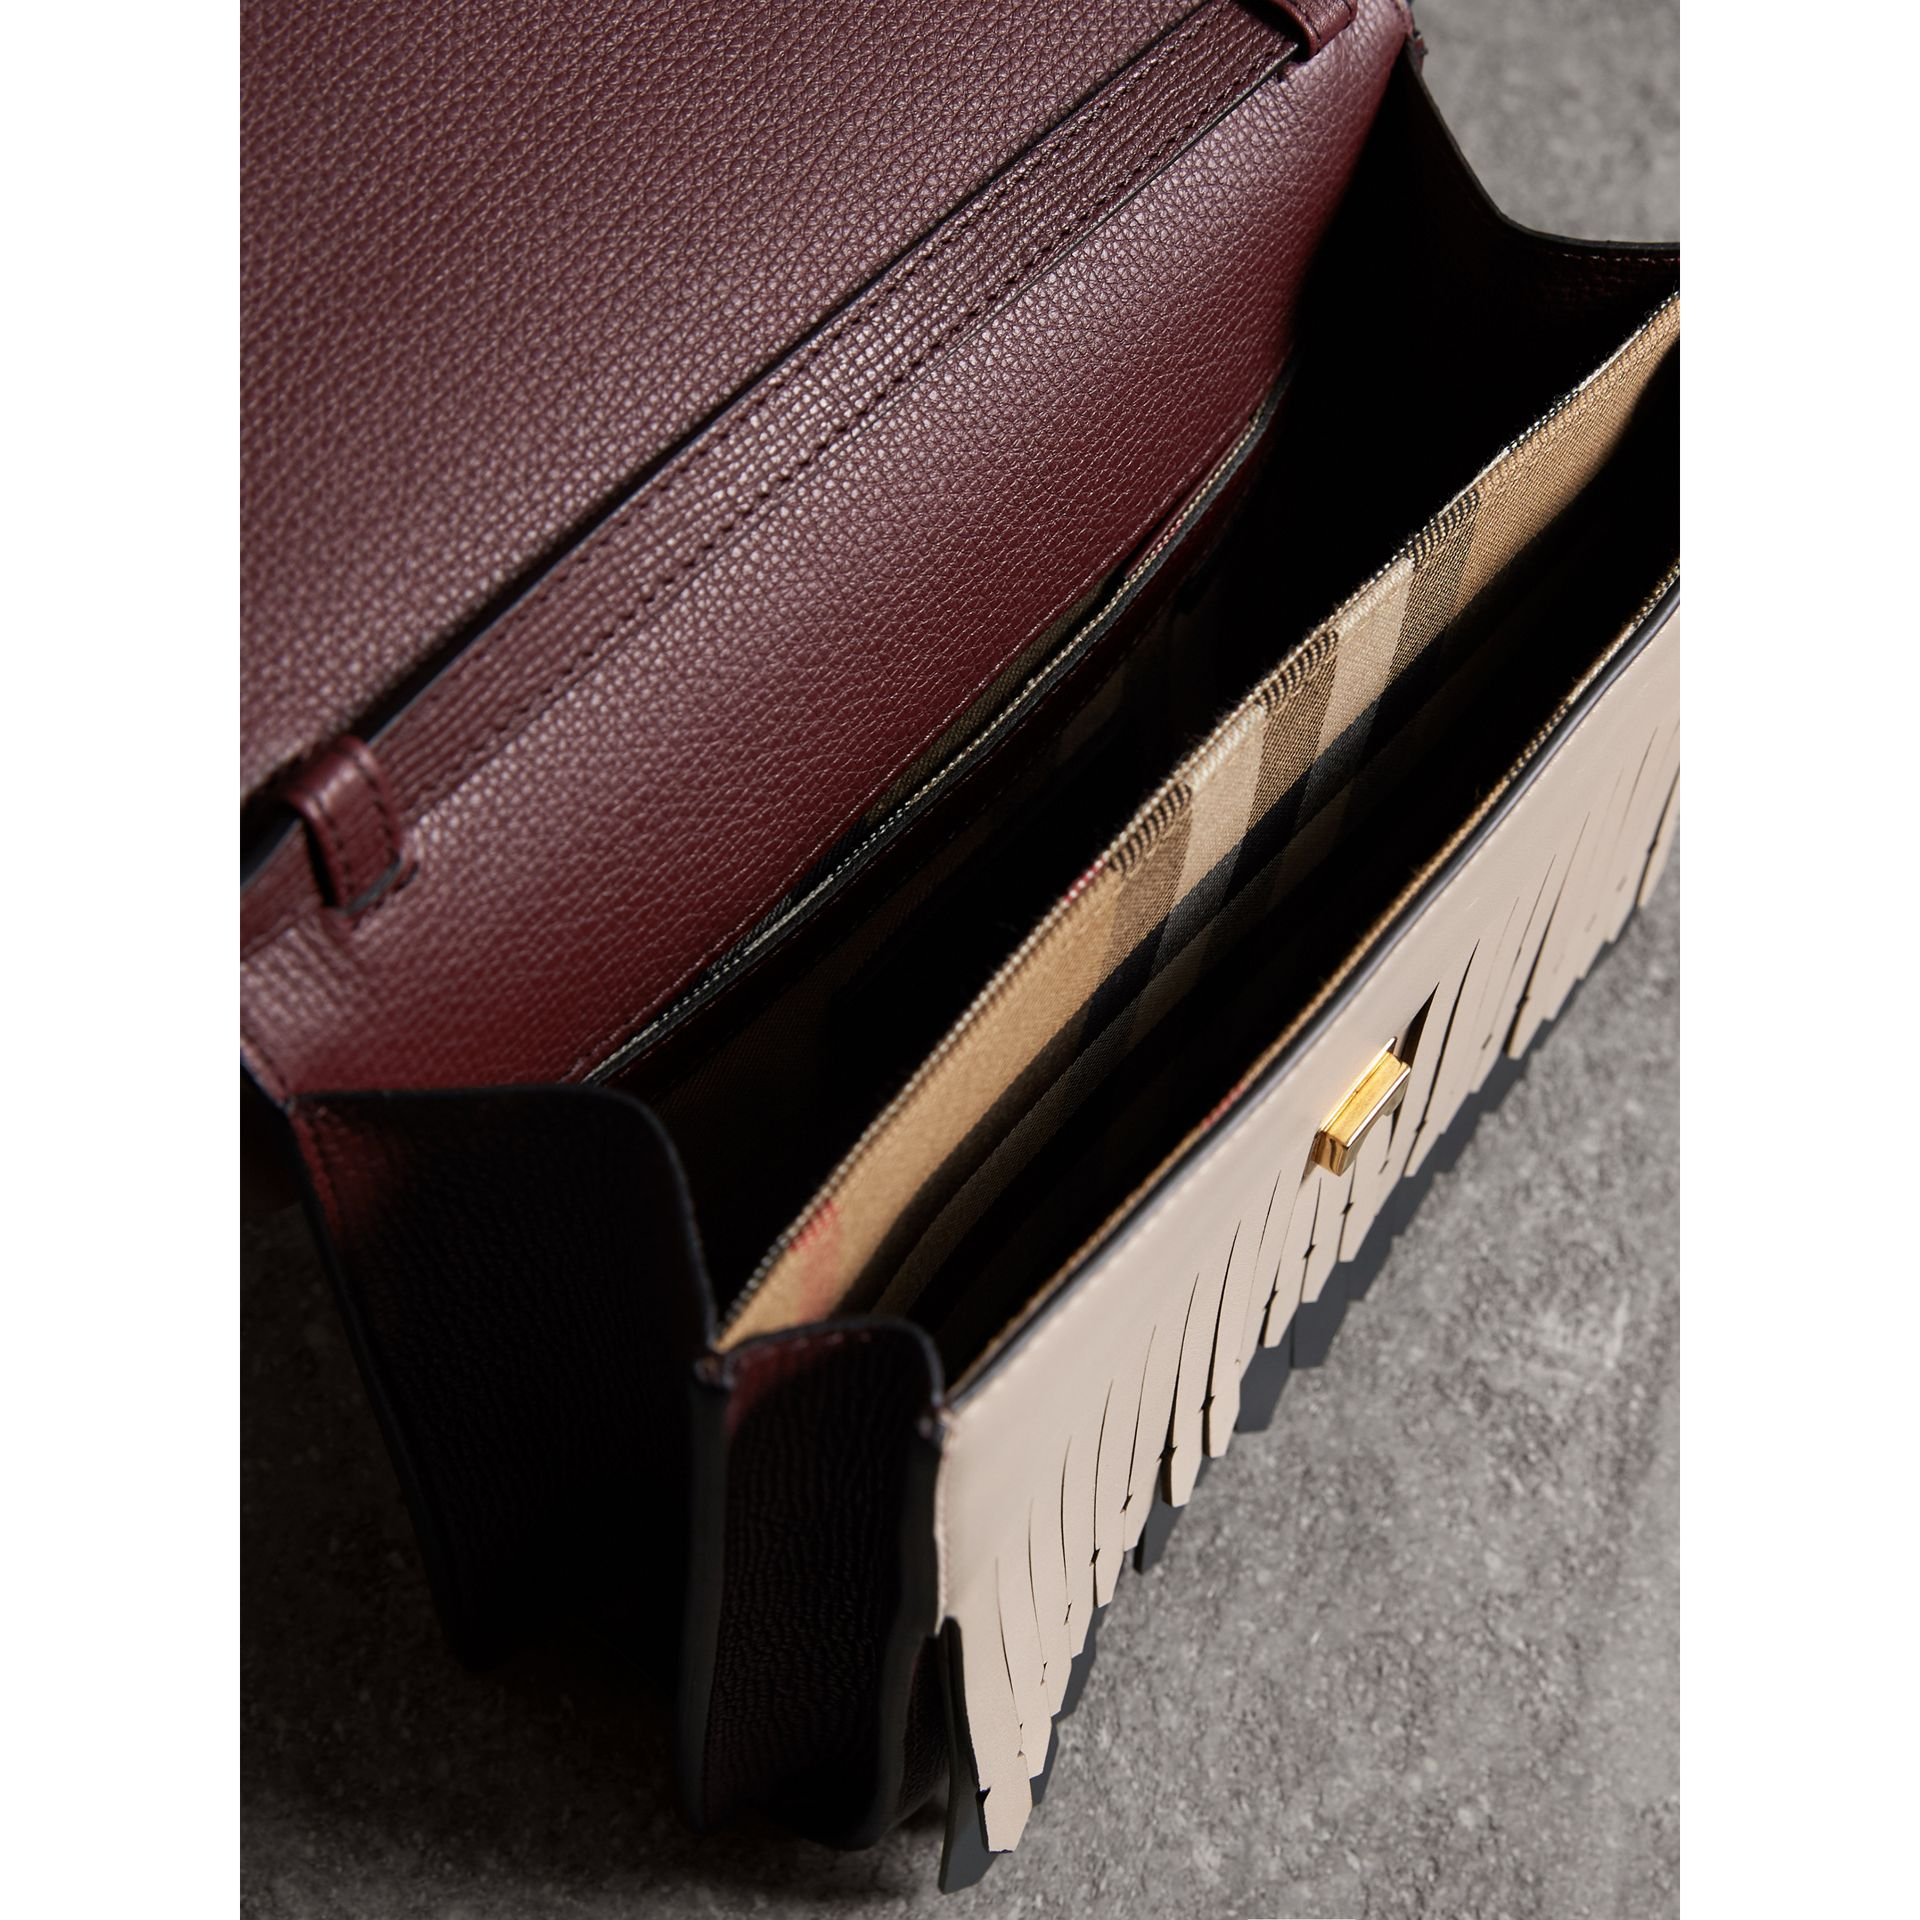 Brogue and Fringe Detail Leather Crossbody Bag in Mahogany Red - Women | Burberry - gallery image 5